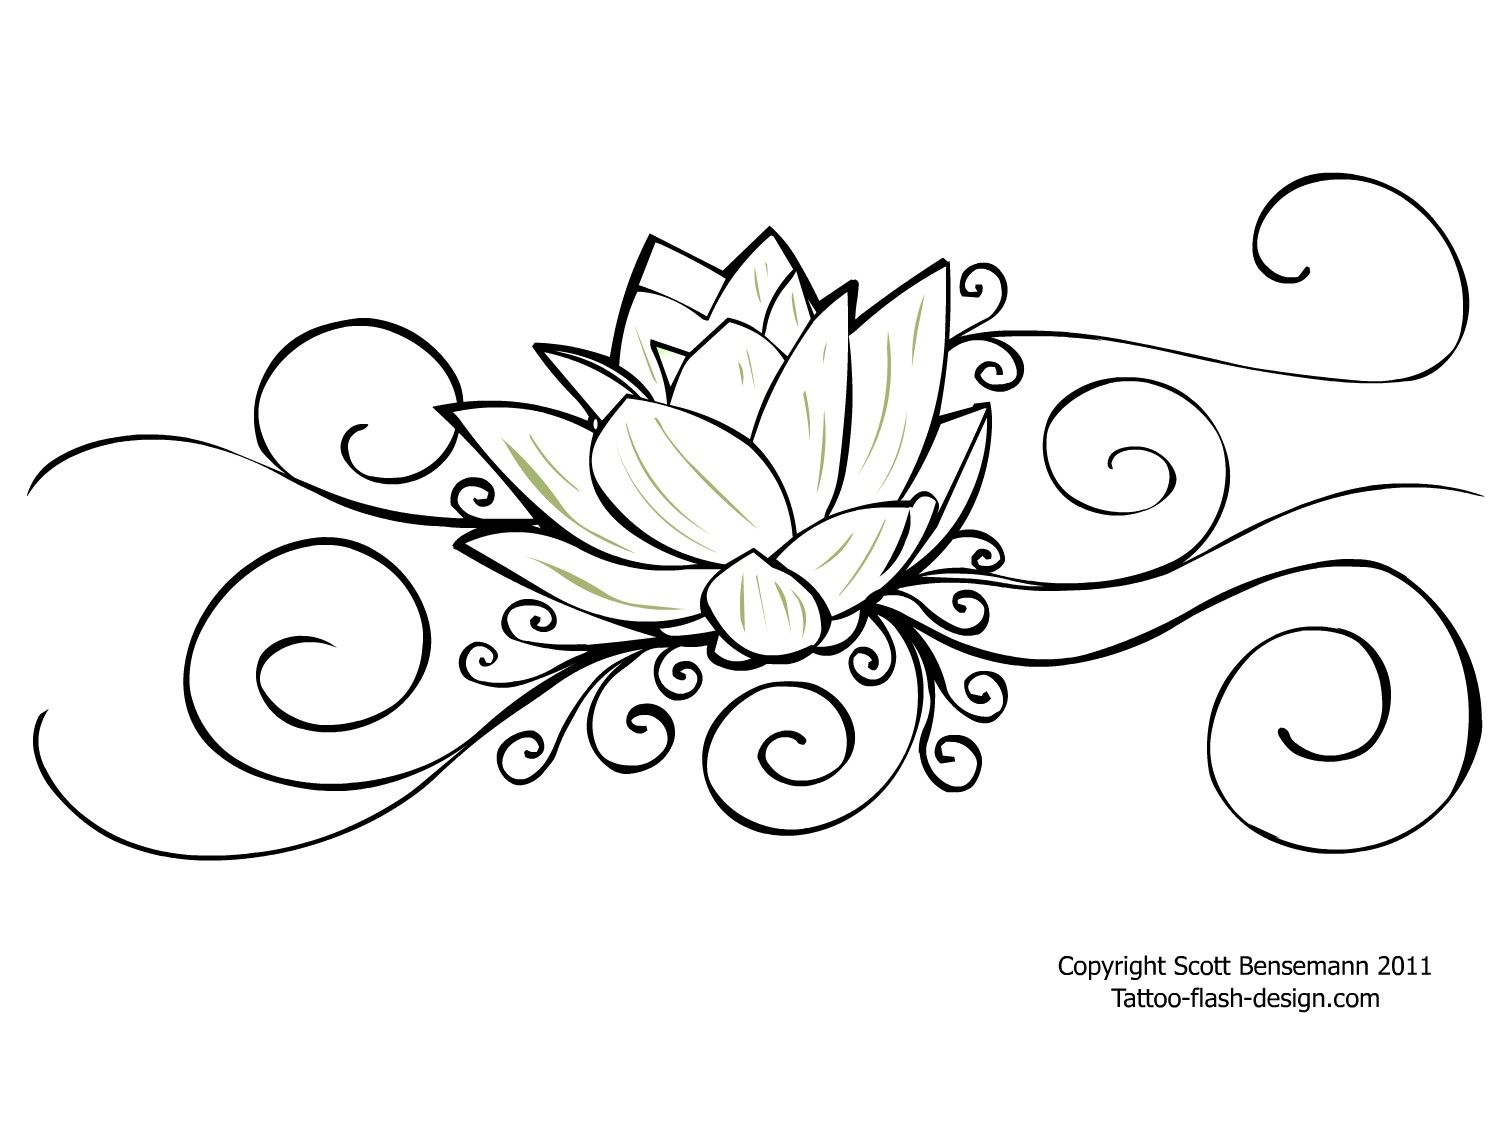 45 beautiful flower drawings and realistic color pencil drawings coloring pages of goddesses for free the symbol of the hindu goddess saraswati she is the patron goddess izmirmasajfo